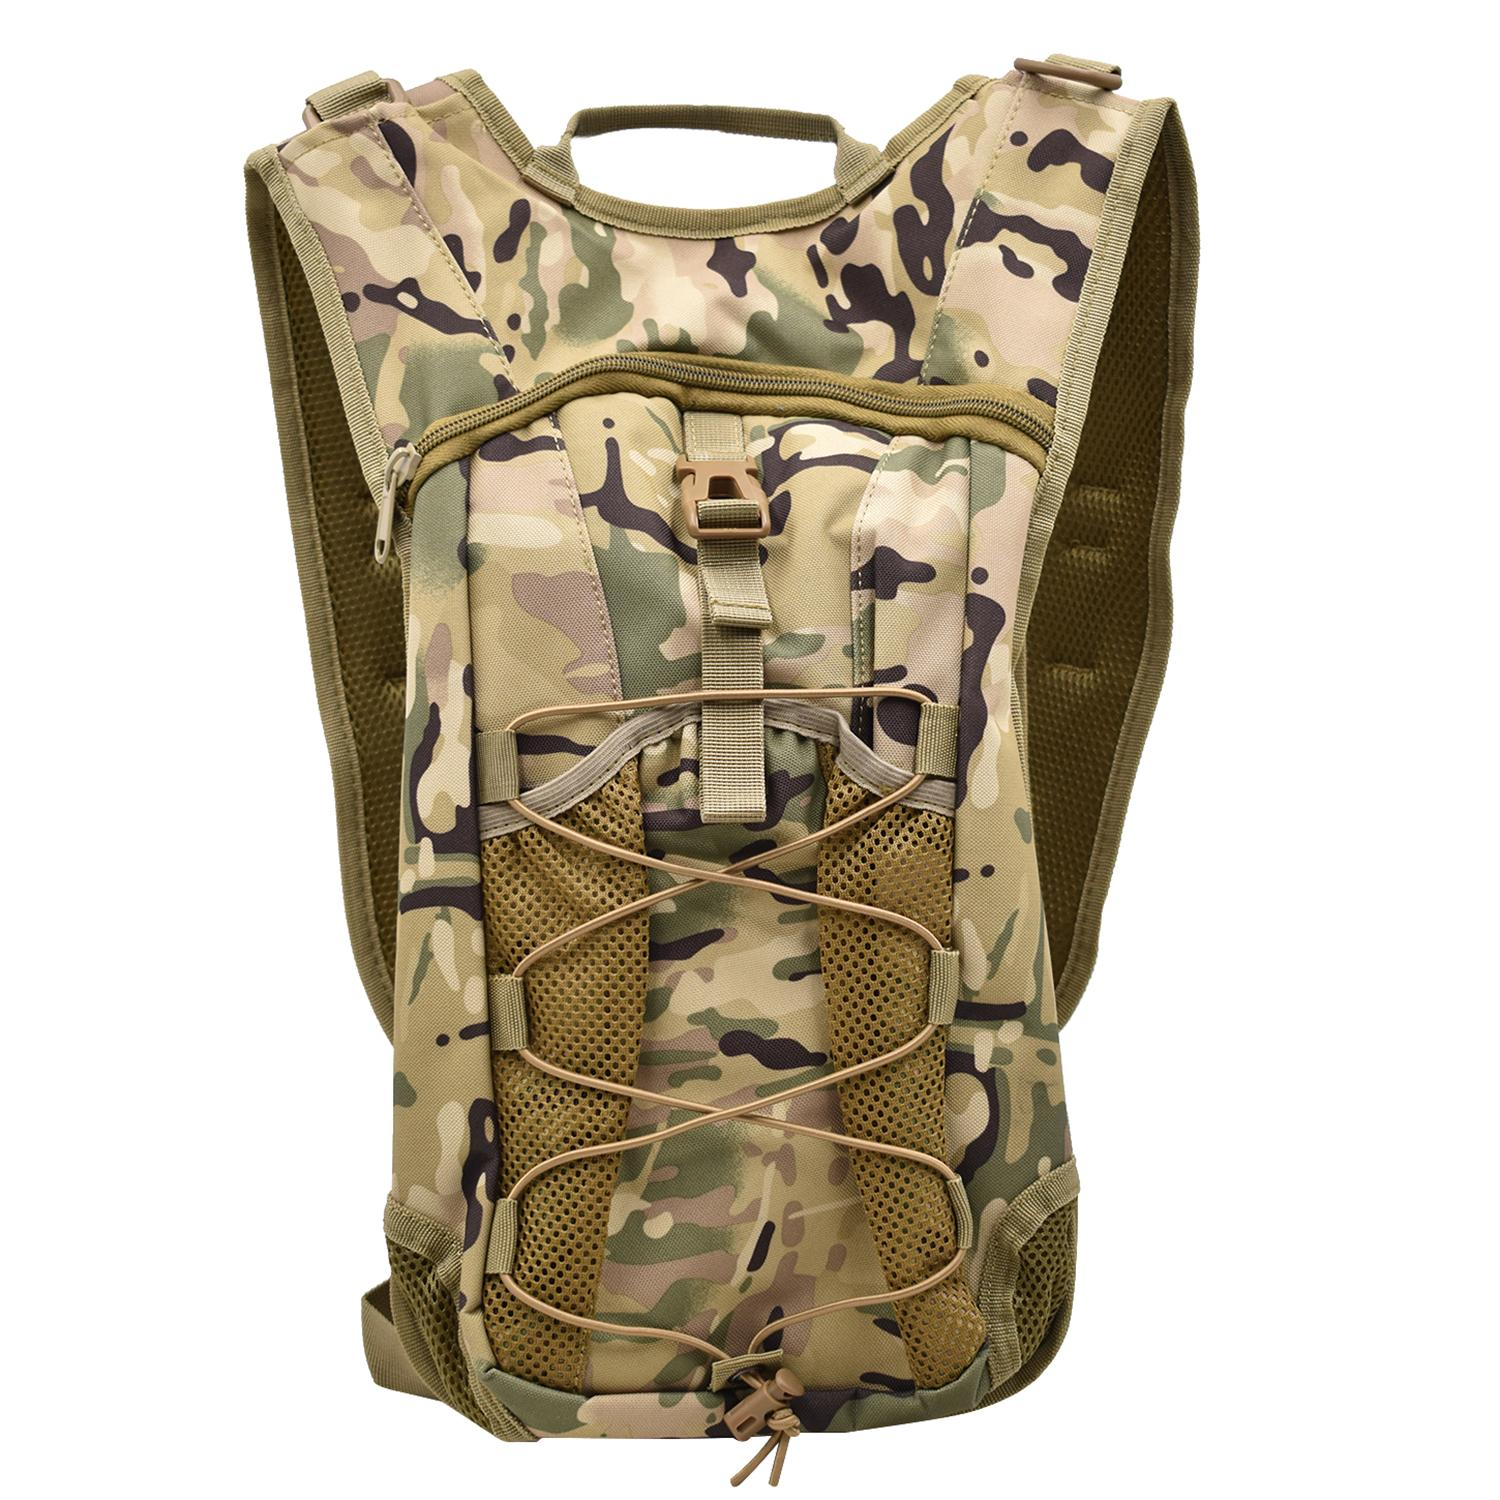 Tactical Outdoor Hydration Water Backpack Cycling Running Hiking Climbing Trail Running Bag Bladder not Included